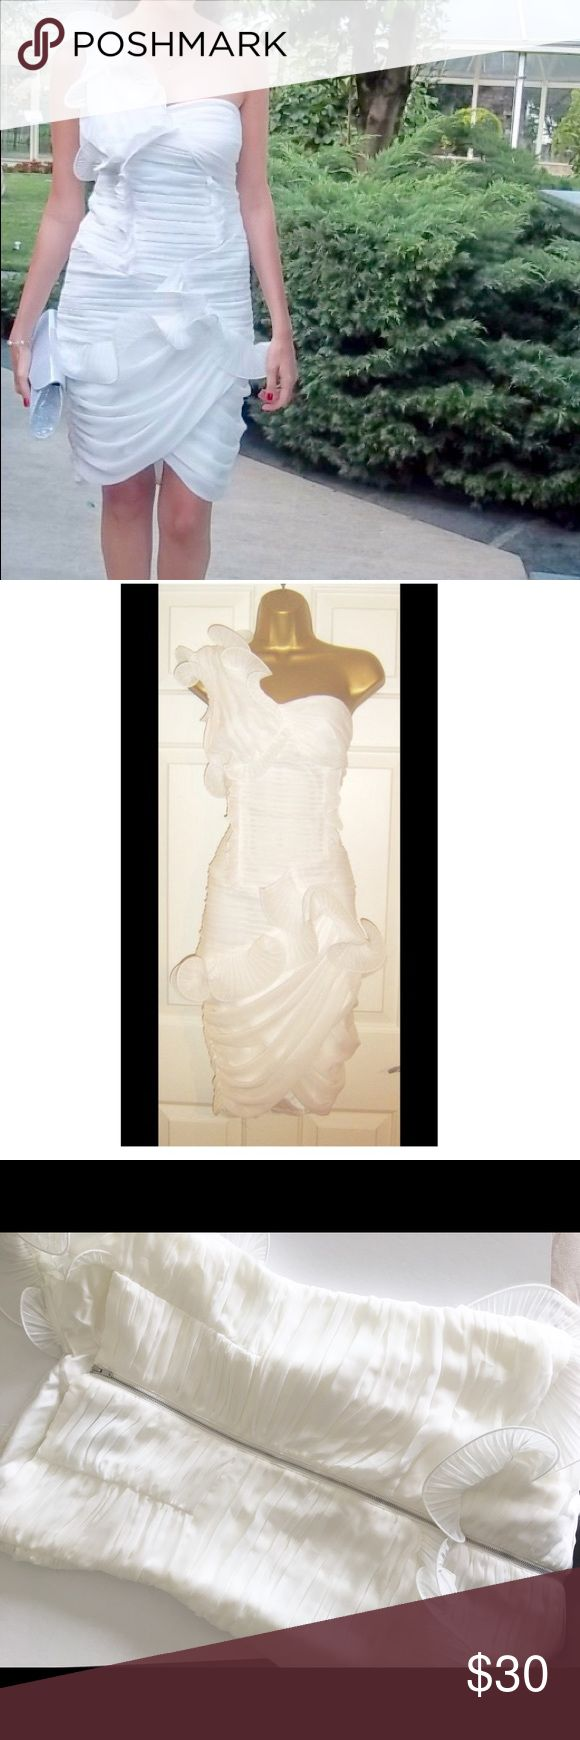 NEW Asos White Dress Size Medium New without tags (worn only once) - Perfect for cocktails, weddings, formal events - No marks and no signs of wear - Original design which goes well with all kinds of colors of shoes and bags. ASOS Dresses